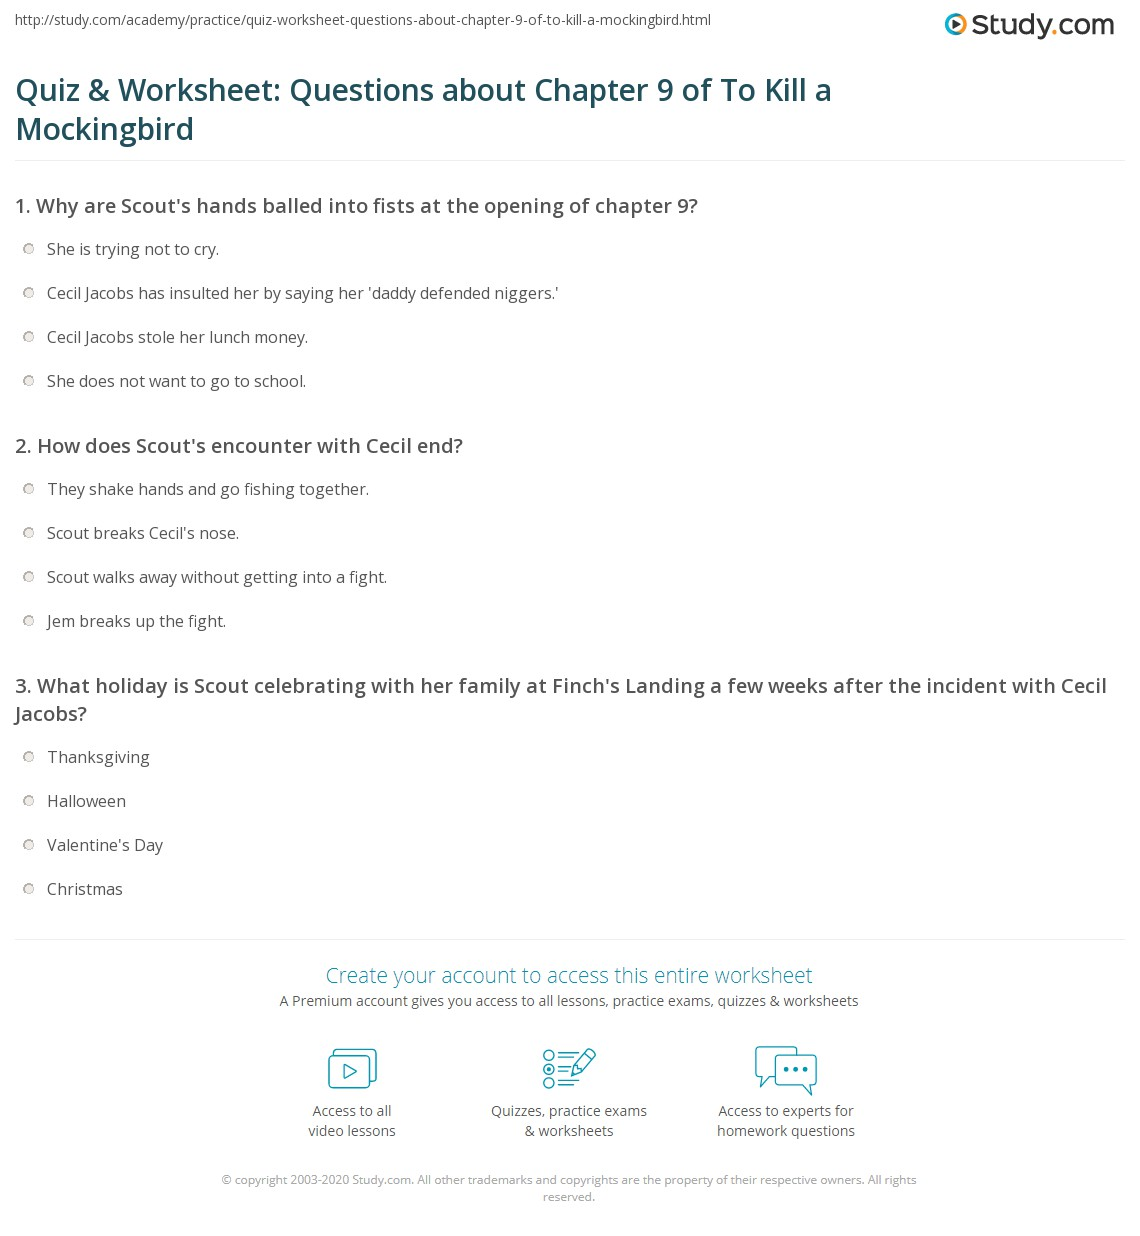 quiz worksheet questions about chapter 9 of to kill a mockingbird rh study com Jeremiah Chapter 29 Verse 11 Jeremiah Chapter 29 Verse 11